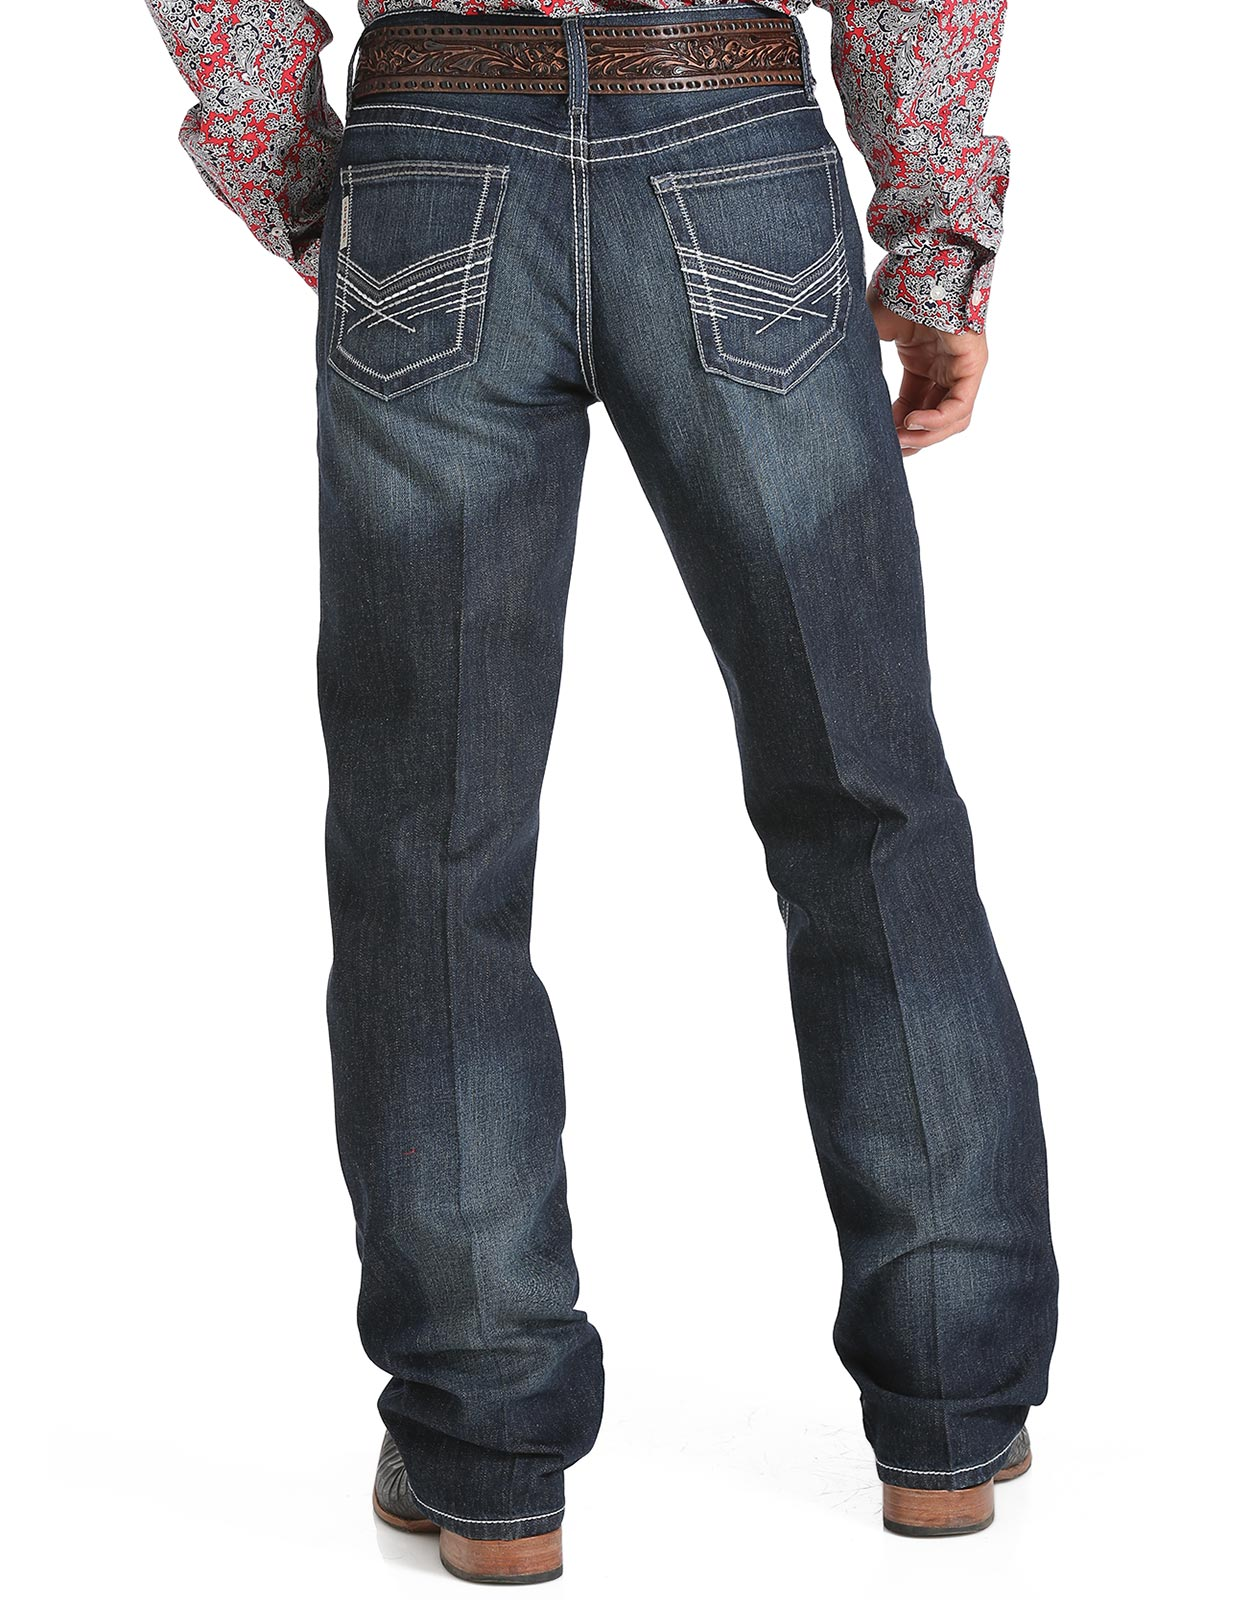 f32d8b73eb80 Cinch Men s Grant Mid Rise Relaxed Fit Boot Cut Jeans - Rinse